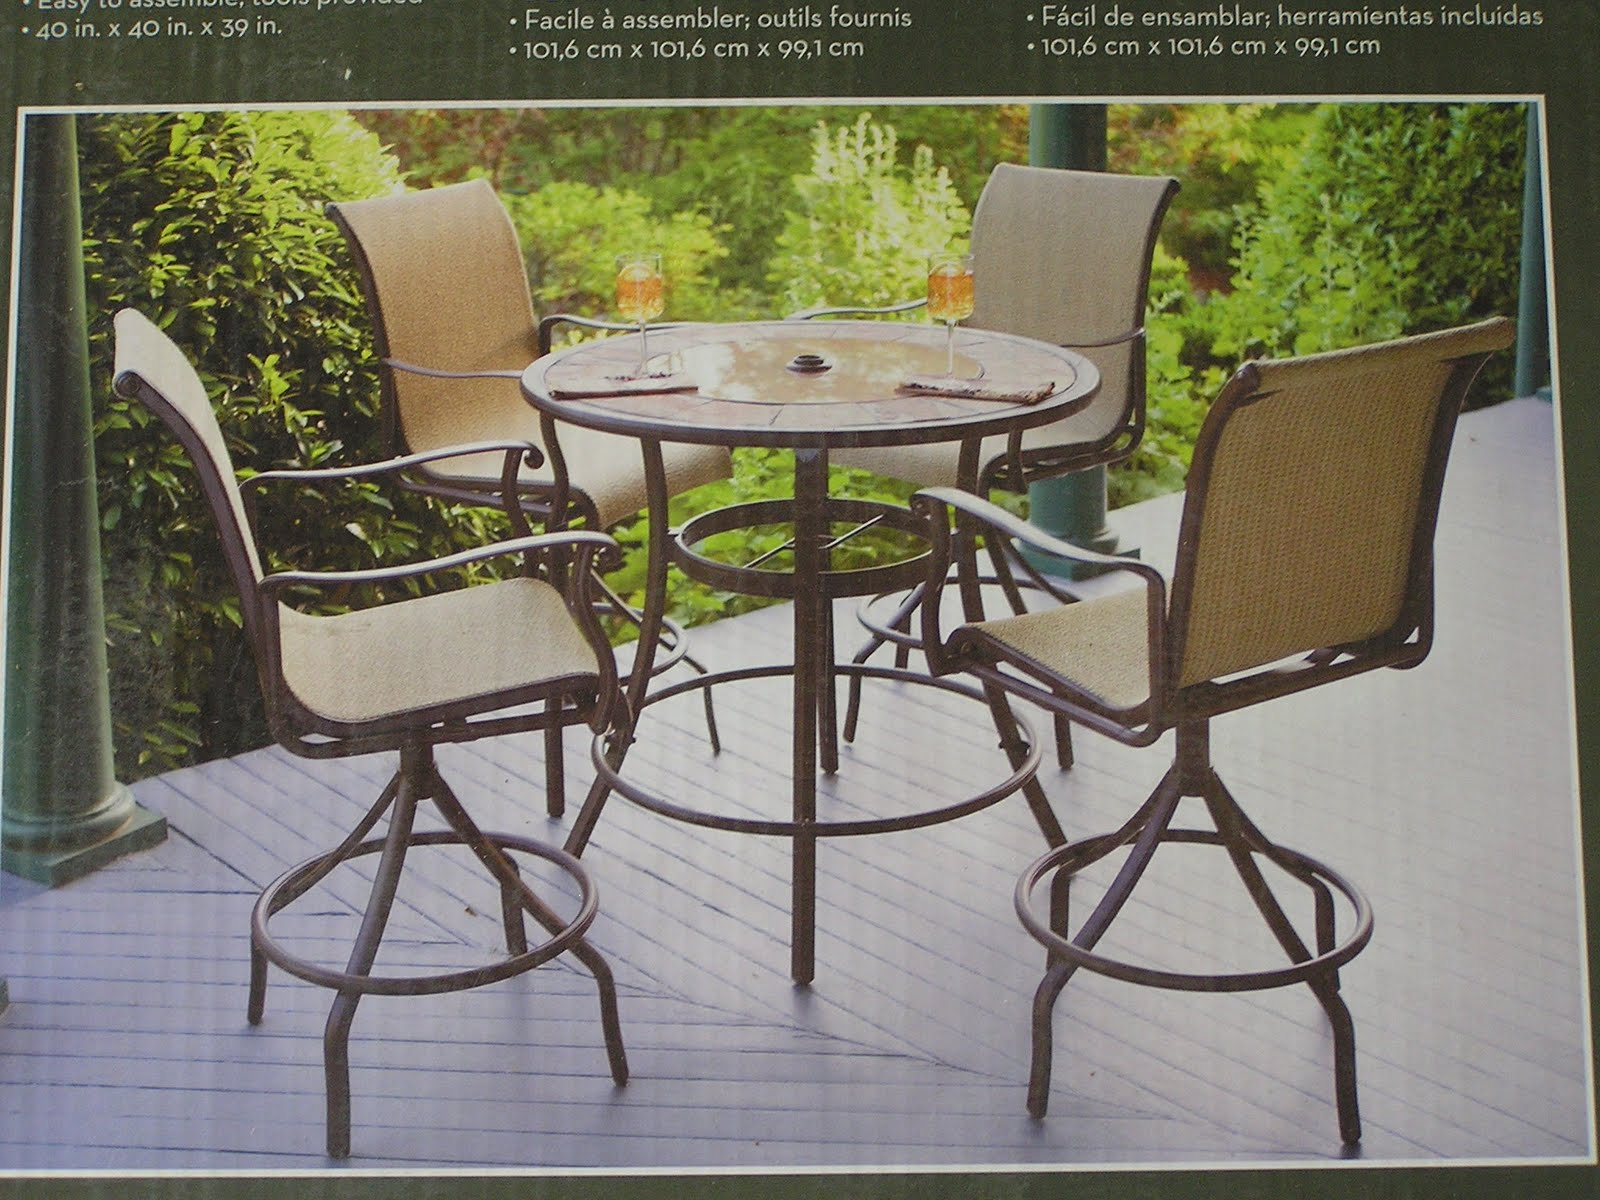 Patio table set patio design ideas for Deck table and chairs